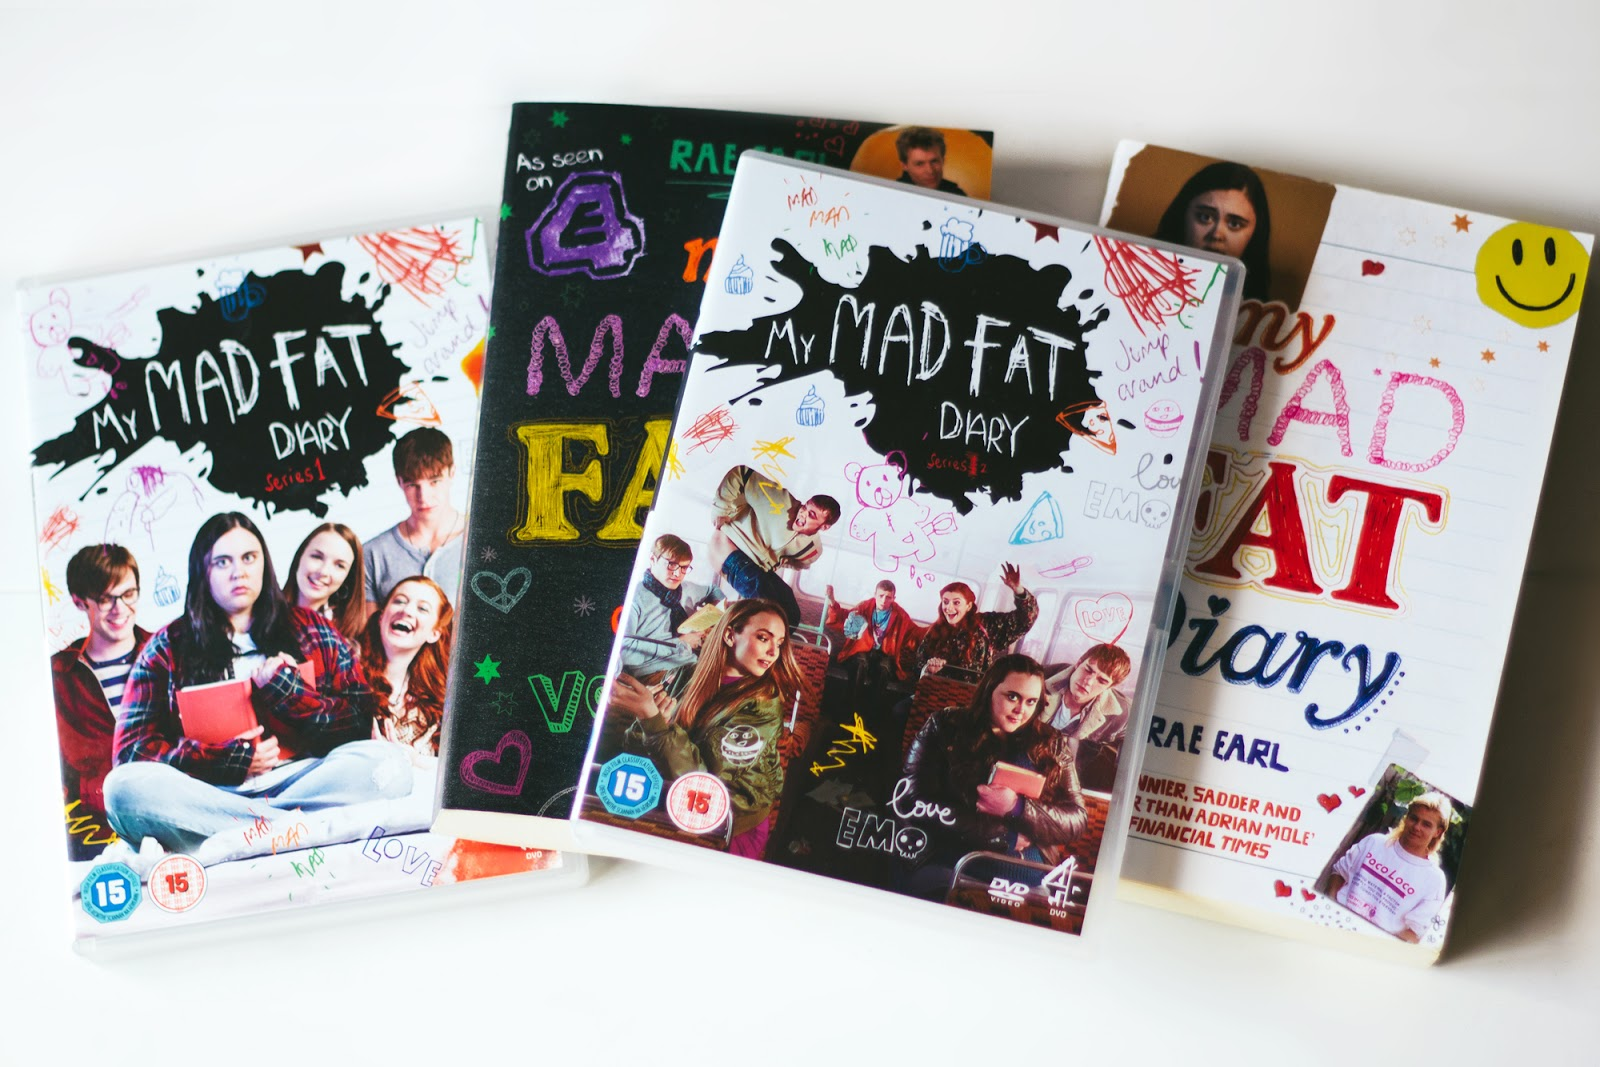 my mad fat diary dvds & books rae earl sharon rooney nico mirallegro finn nelson